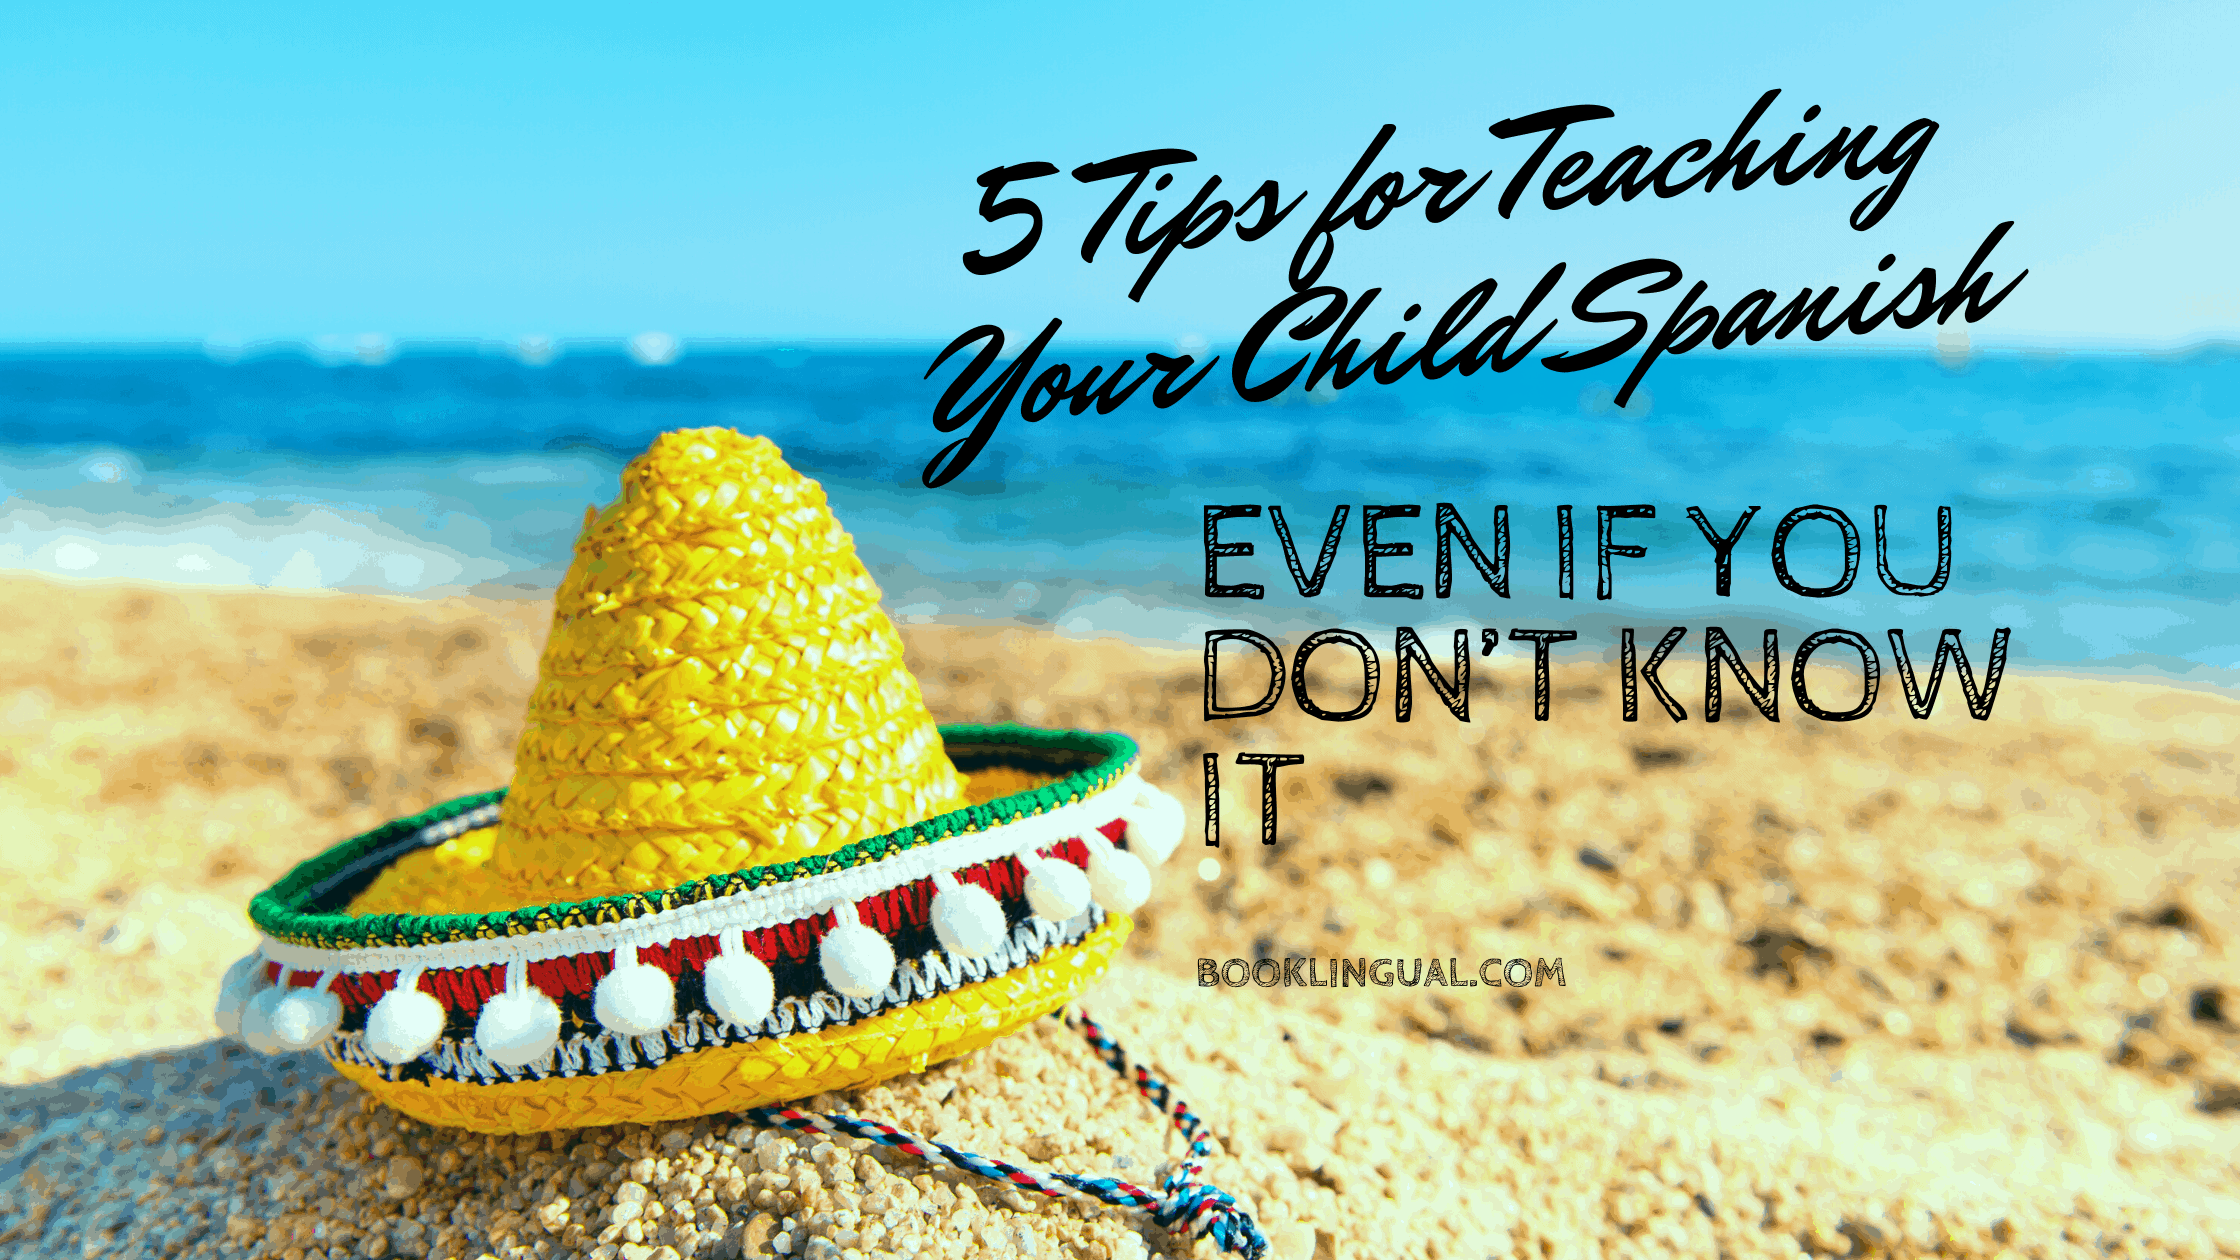 BookLingual: 5 Tips for Teaching Your Child Spanish, even if you don't know it.